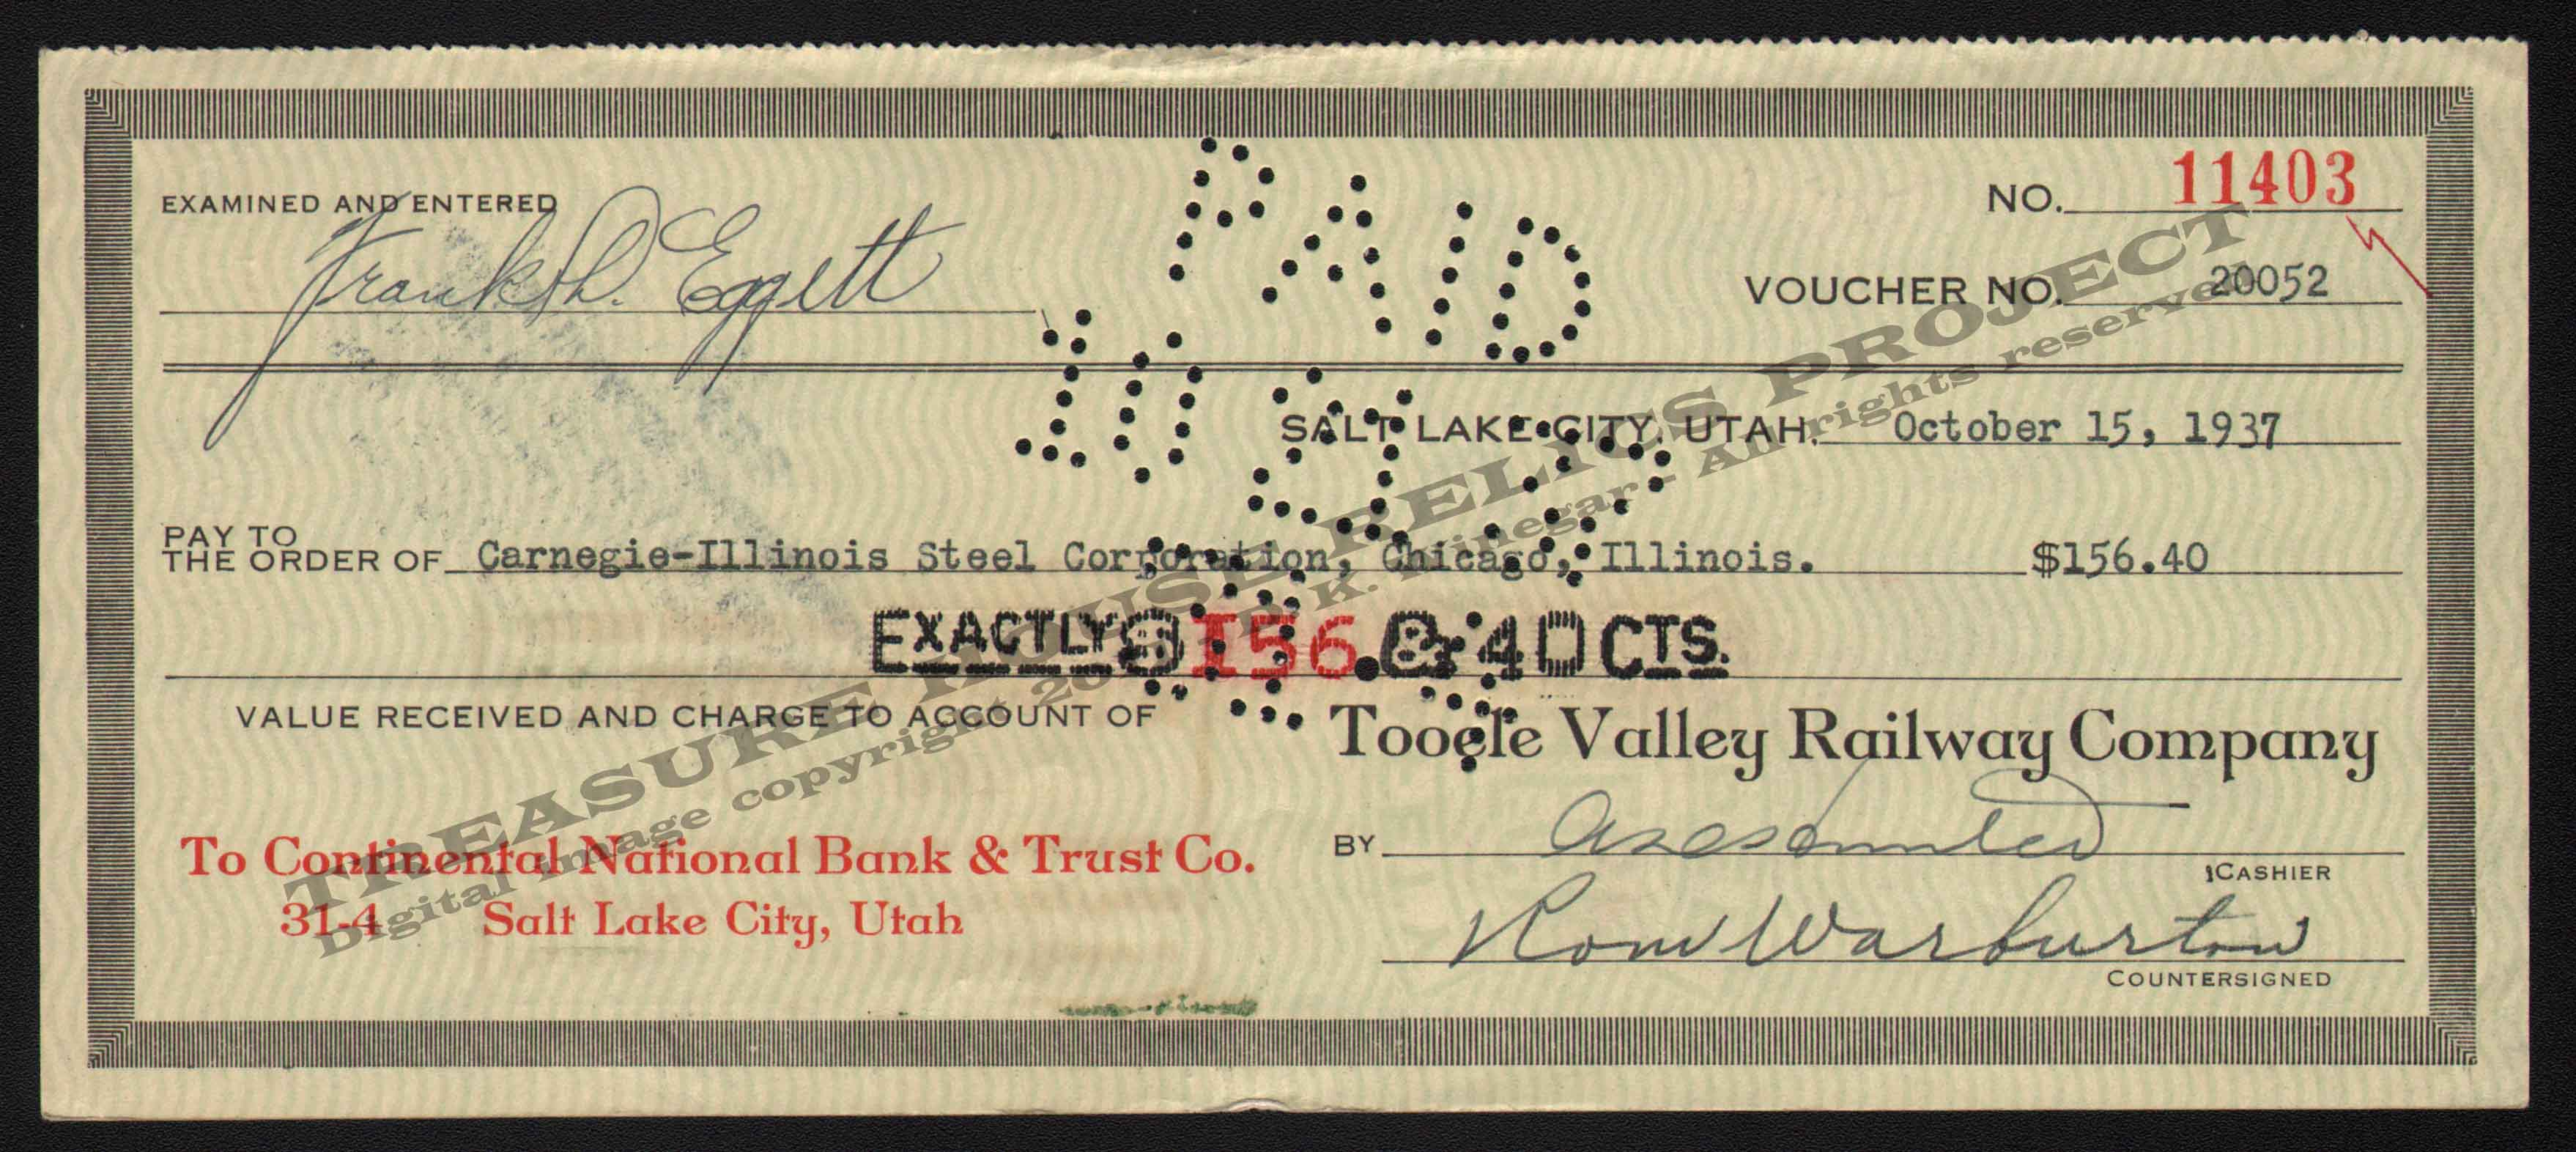 CHECK_-_TOOELE_VALLEY_RR_11403_1937_400_EMBOSS.jpg